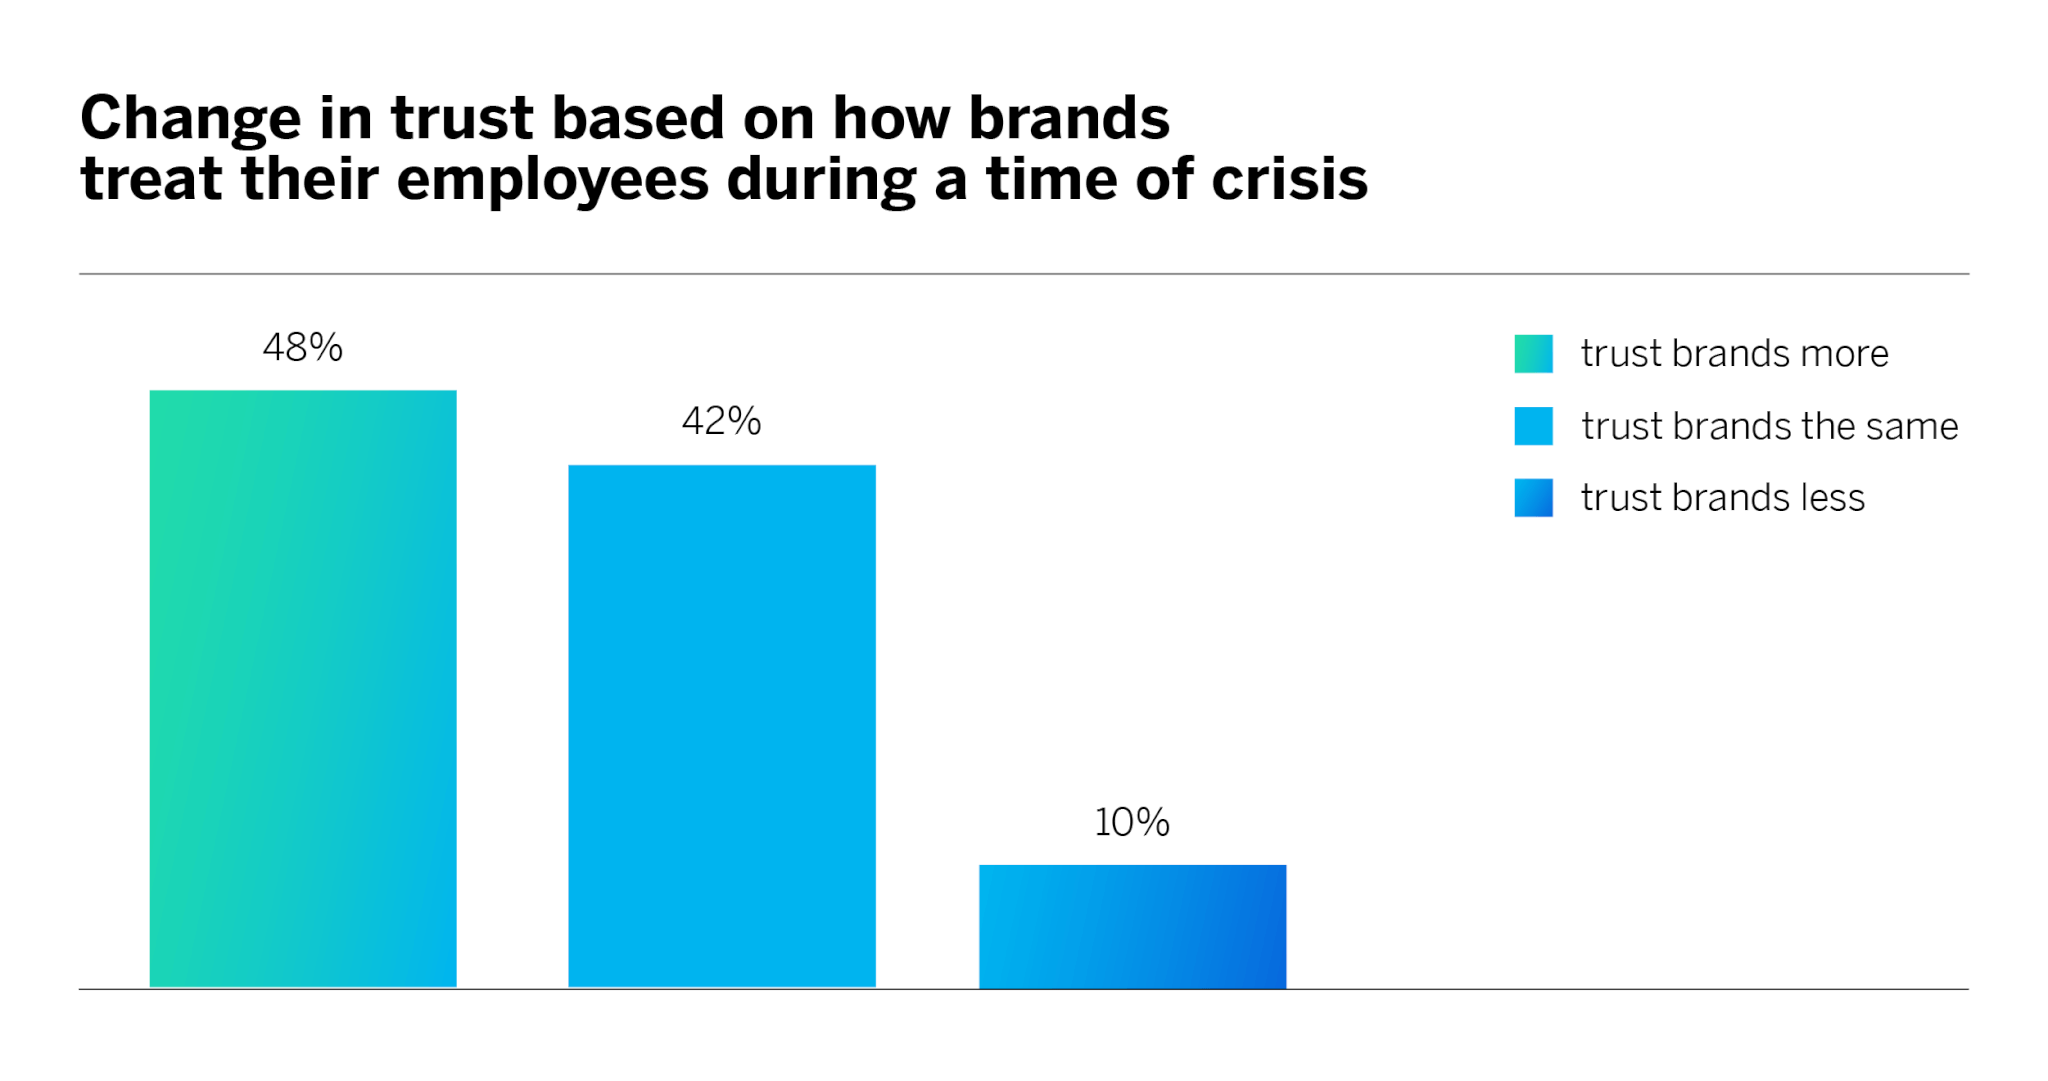 Change in trust based on how brands treat their employees during a time of crisis